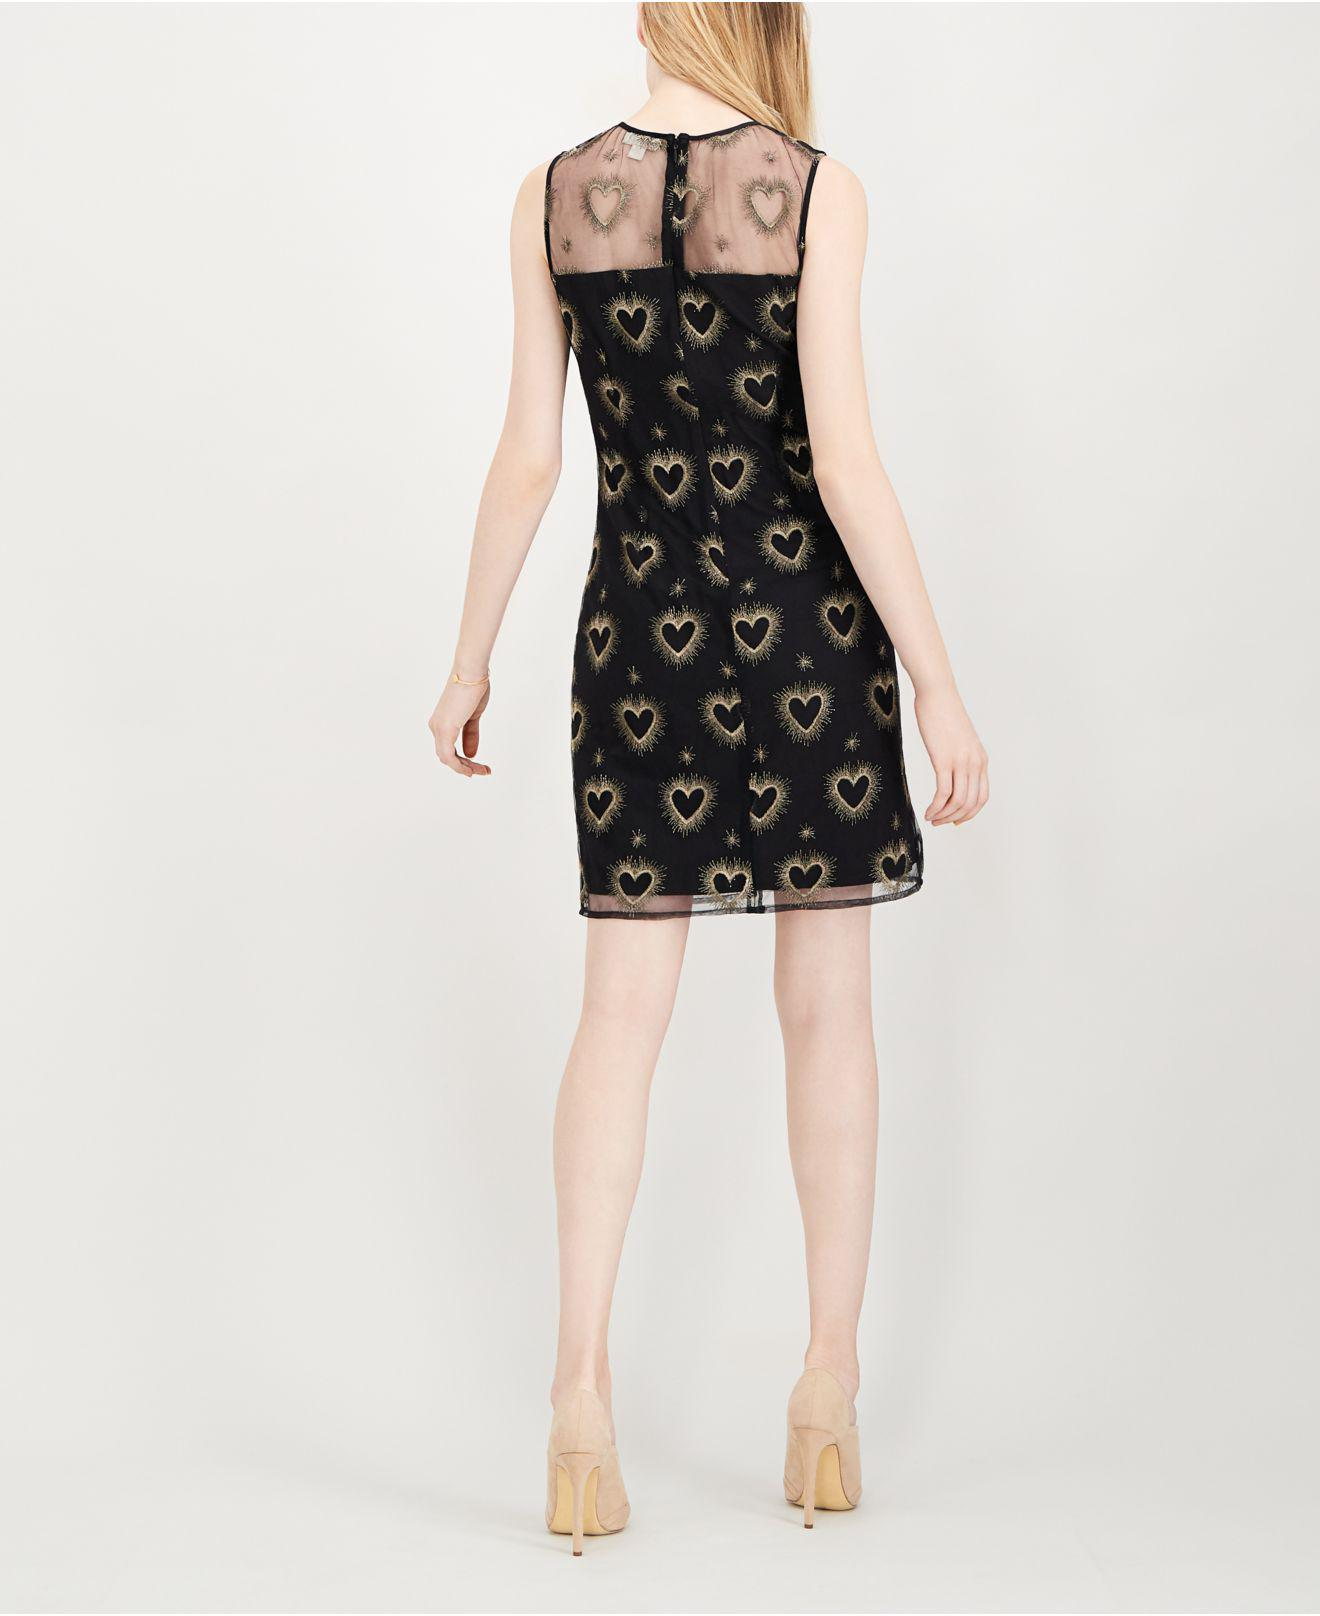 c599a7a1d00c Lyst - Maison Jules Embroidered Illusion Dress